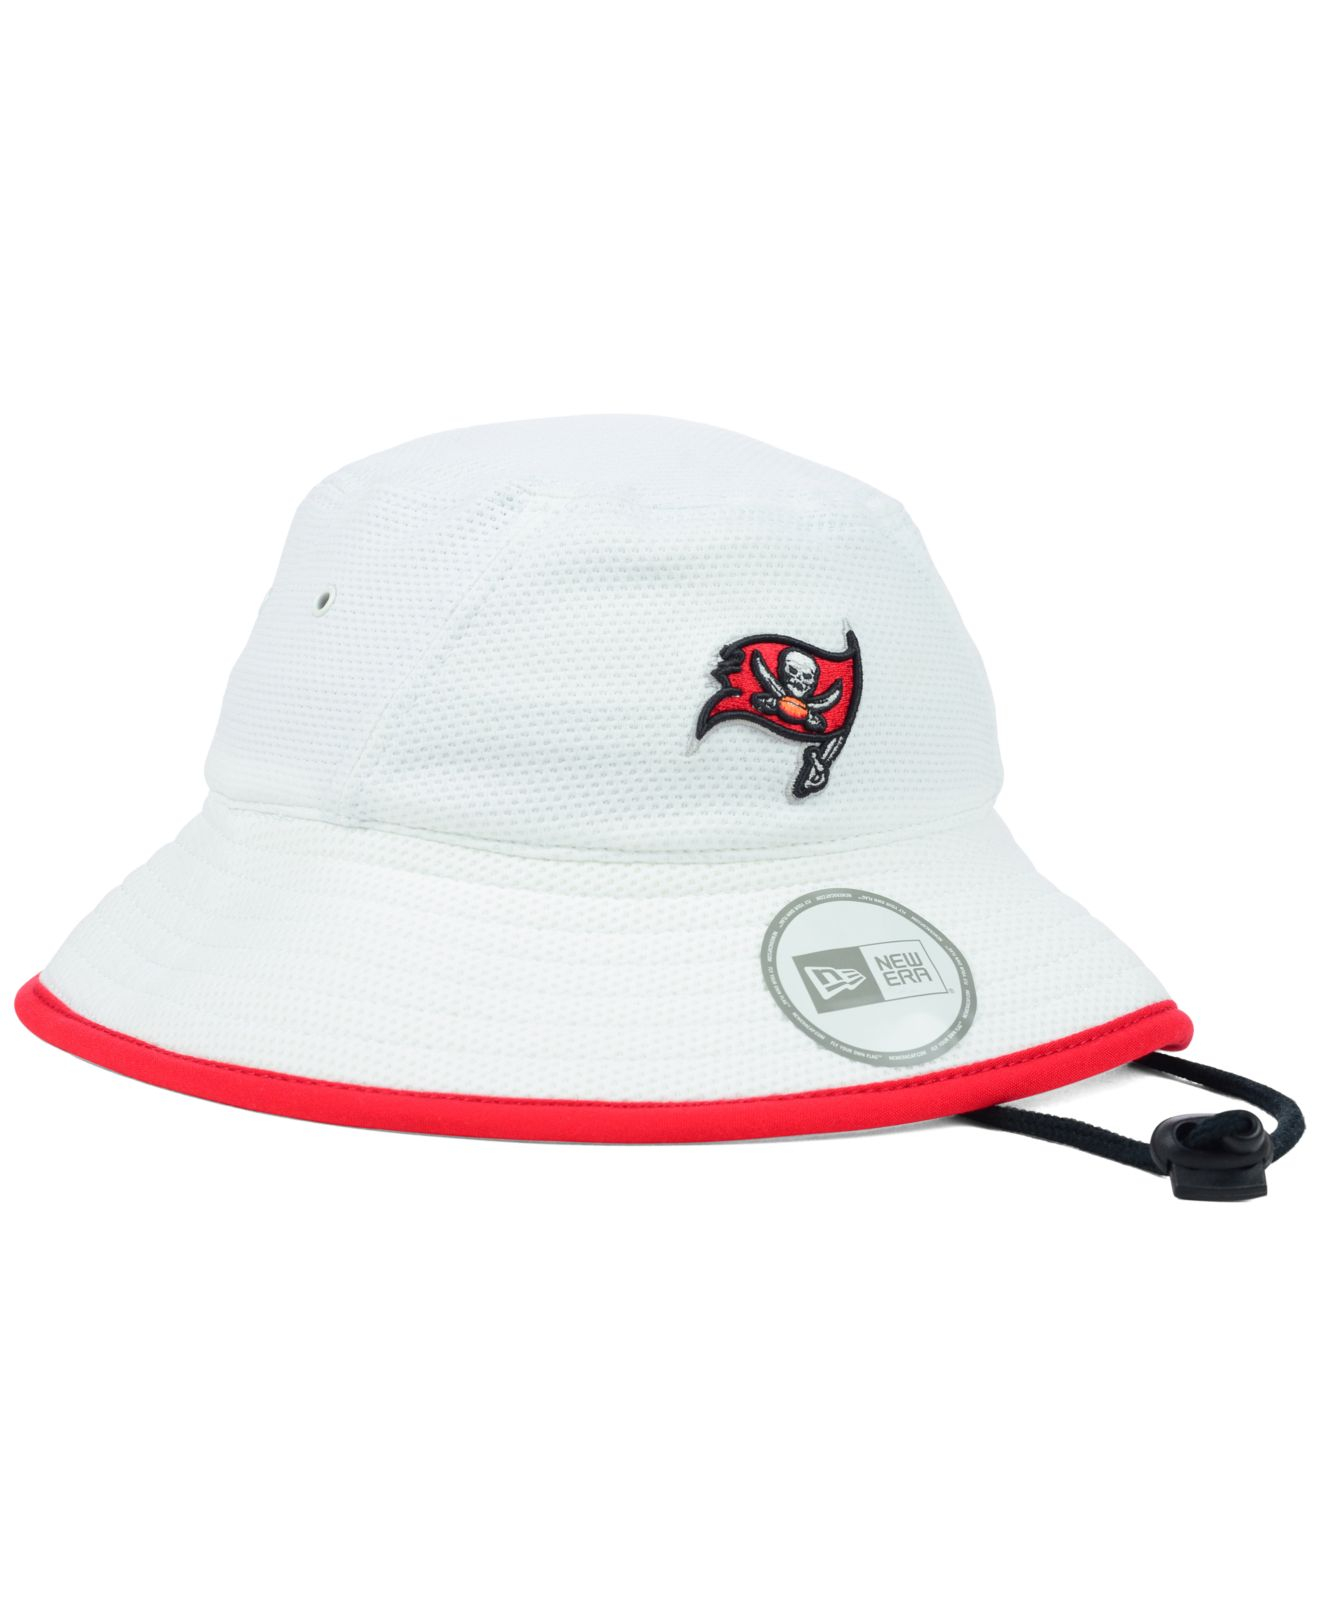 fea15eb5bdf00 Lyst - KTZ Tampa Bay Buccaneers Training Camp Bucket Hat in White ...